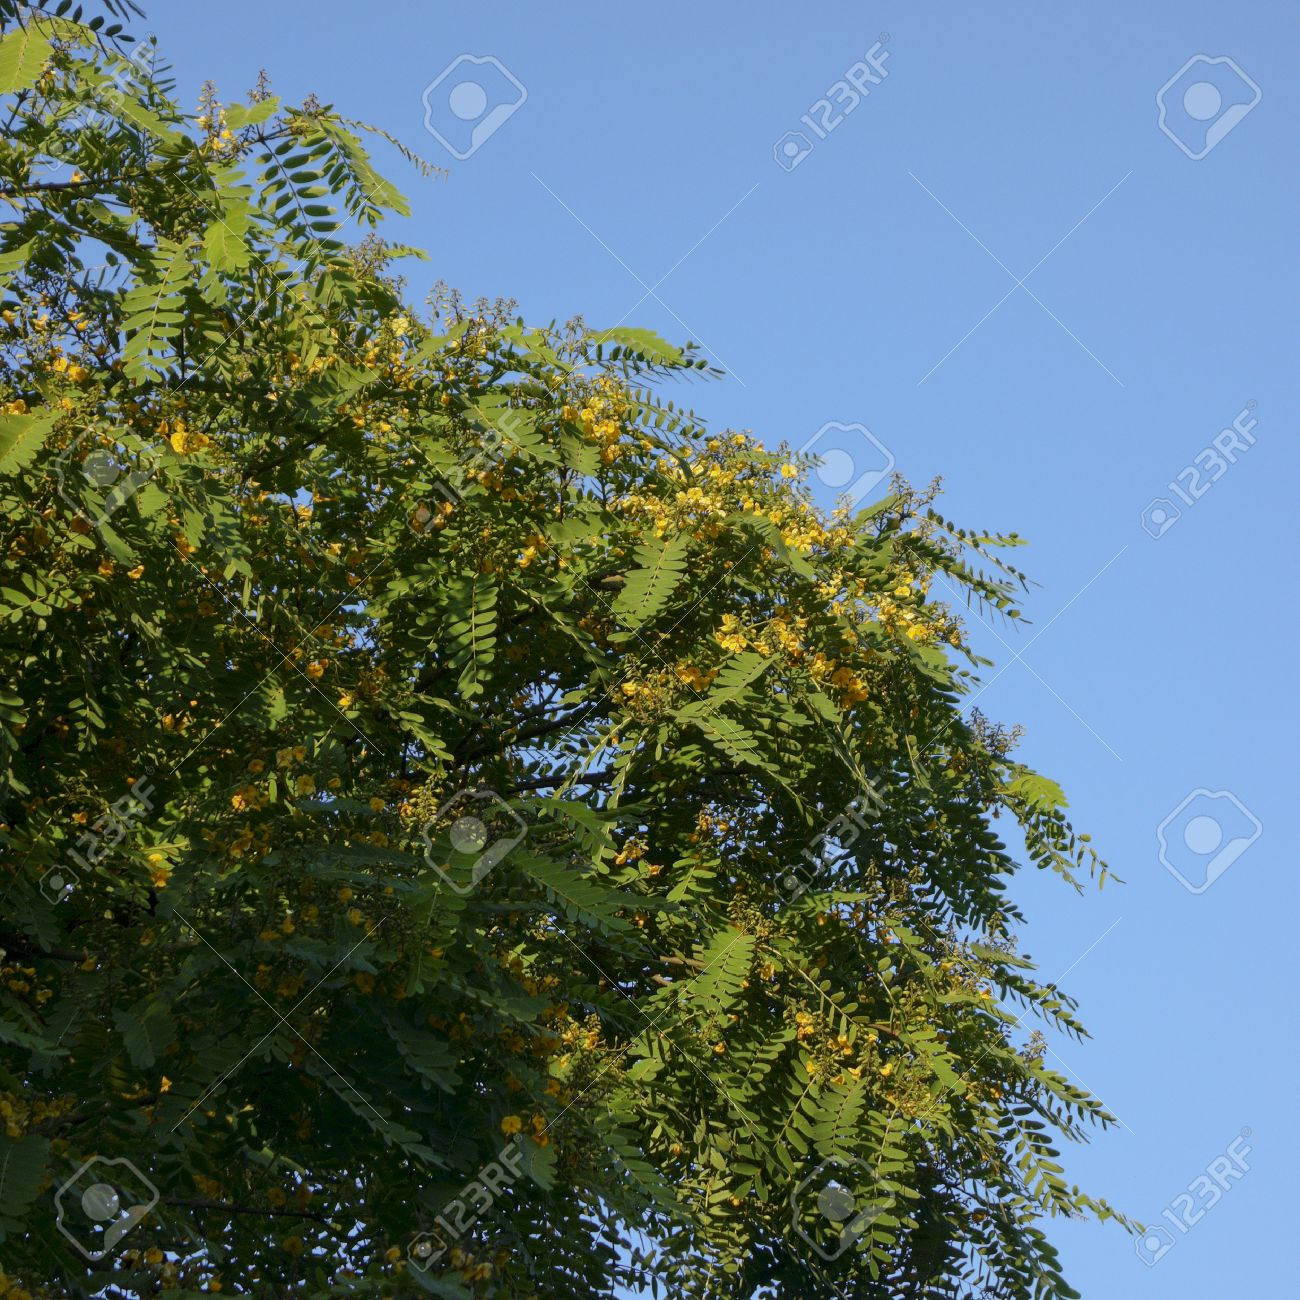 Southern california acacia tree crown with yellow flowers stock southern california acacia tree crown with yellow flowers stock photo 30860079 mightylinksfo